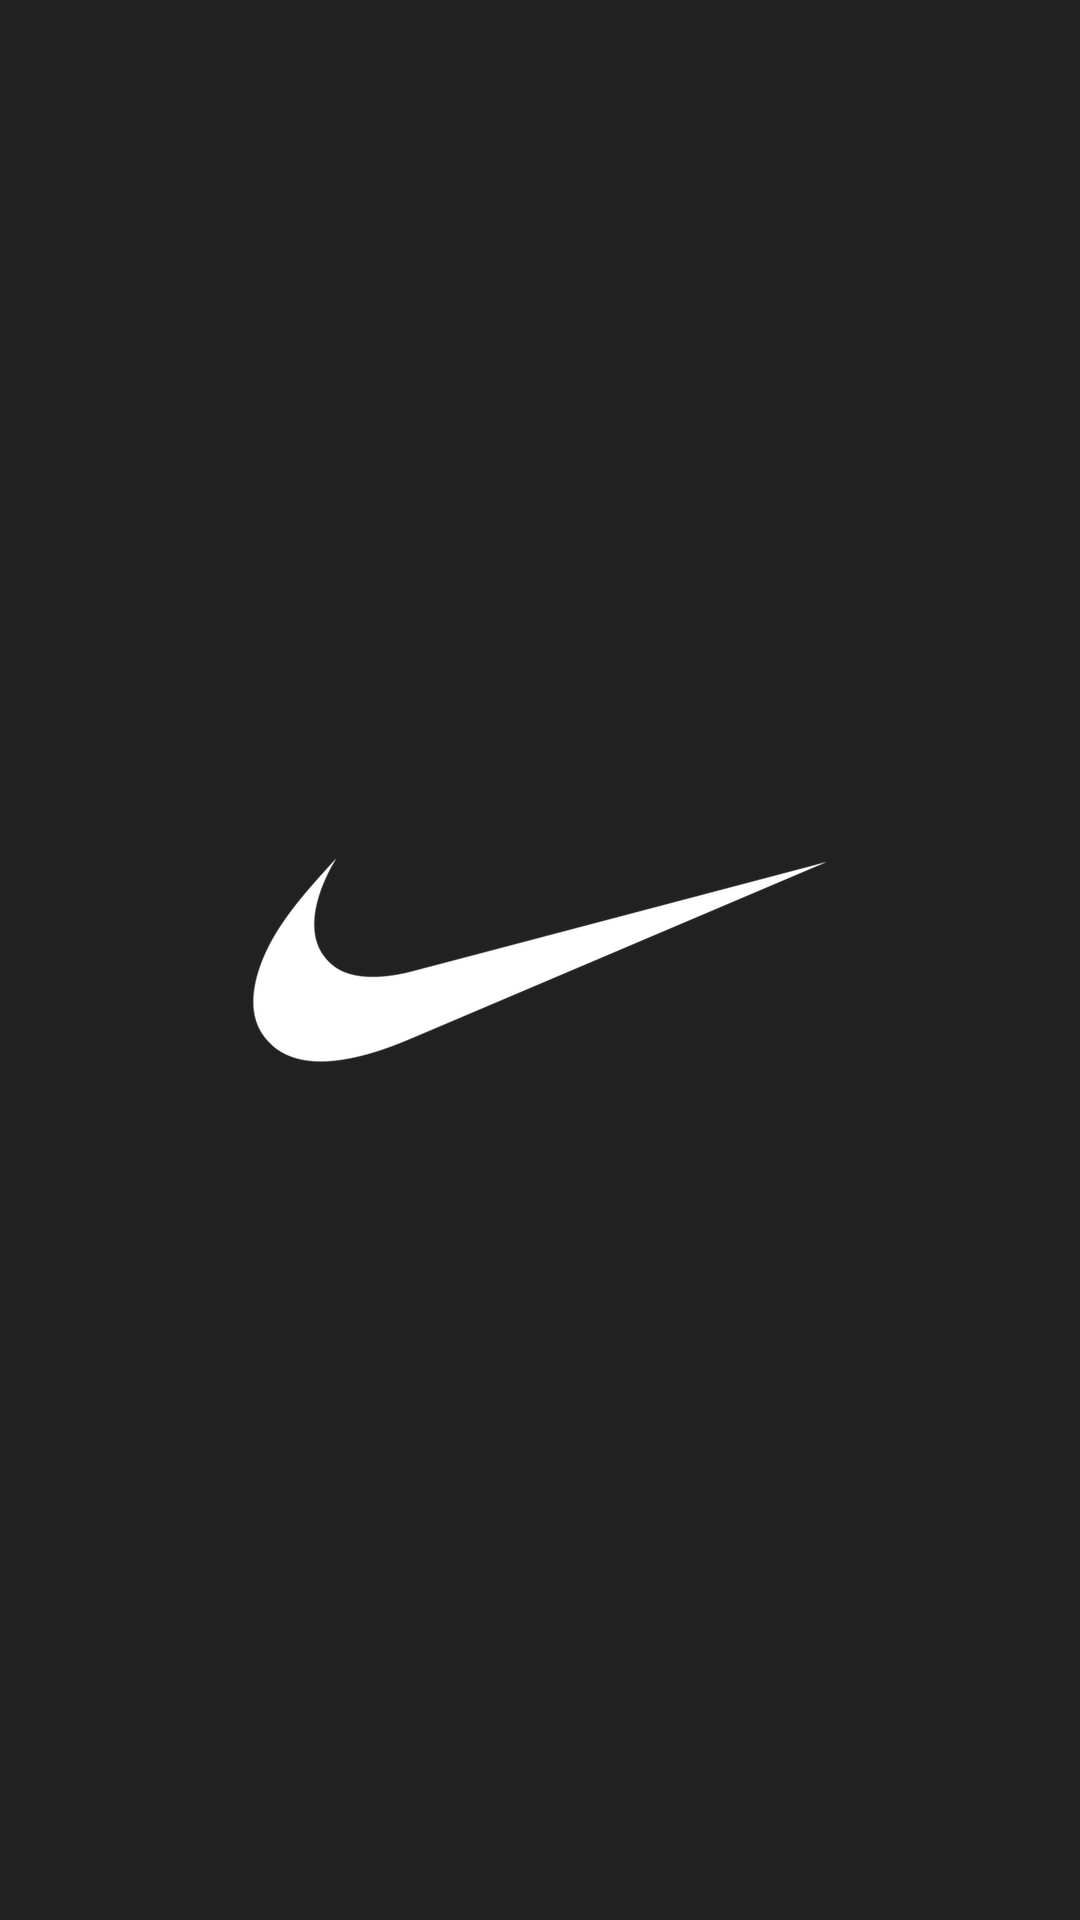 Nike Logo Iphone Wallpaper Iphone 用壁紙 Nba 壁紙 ナイキ